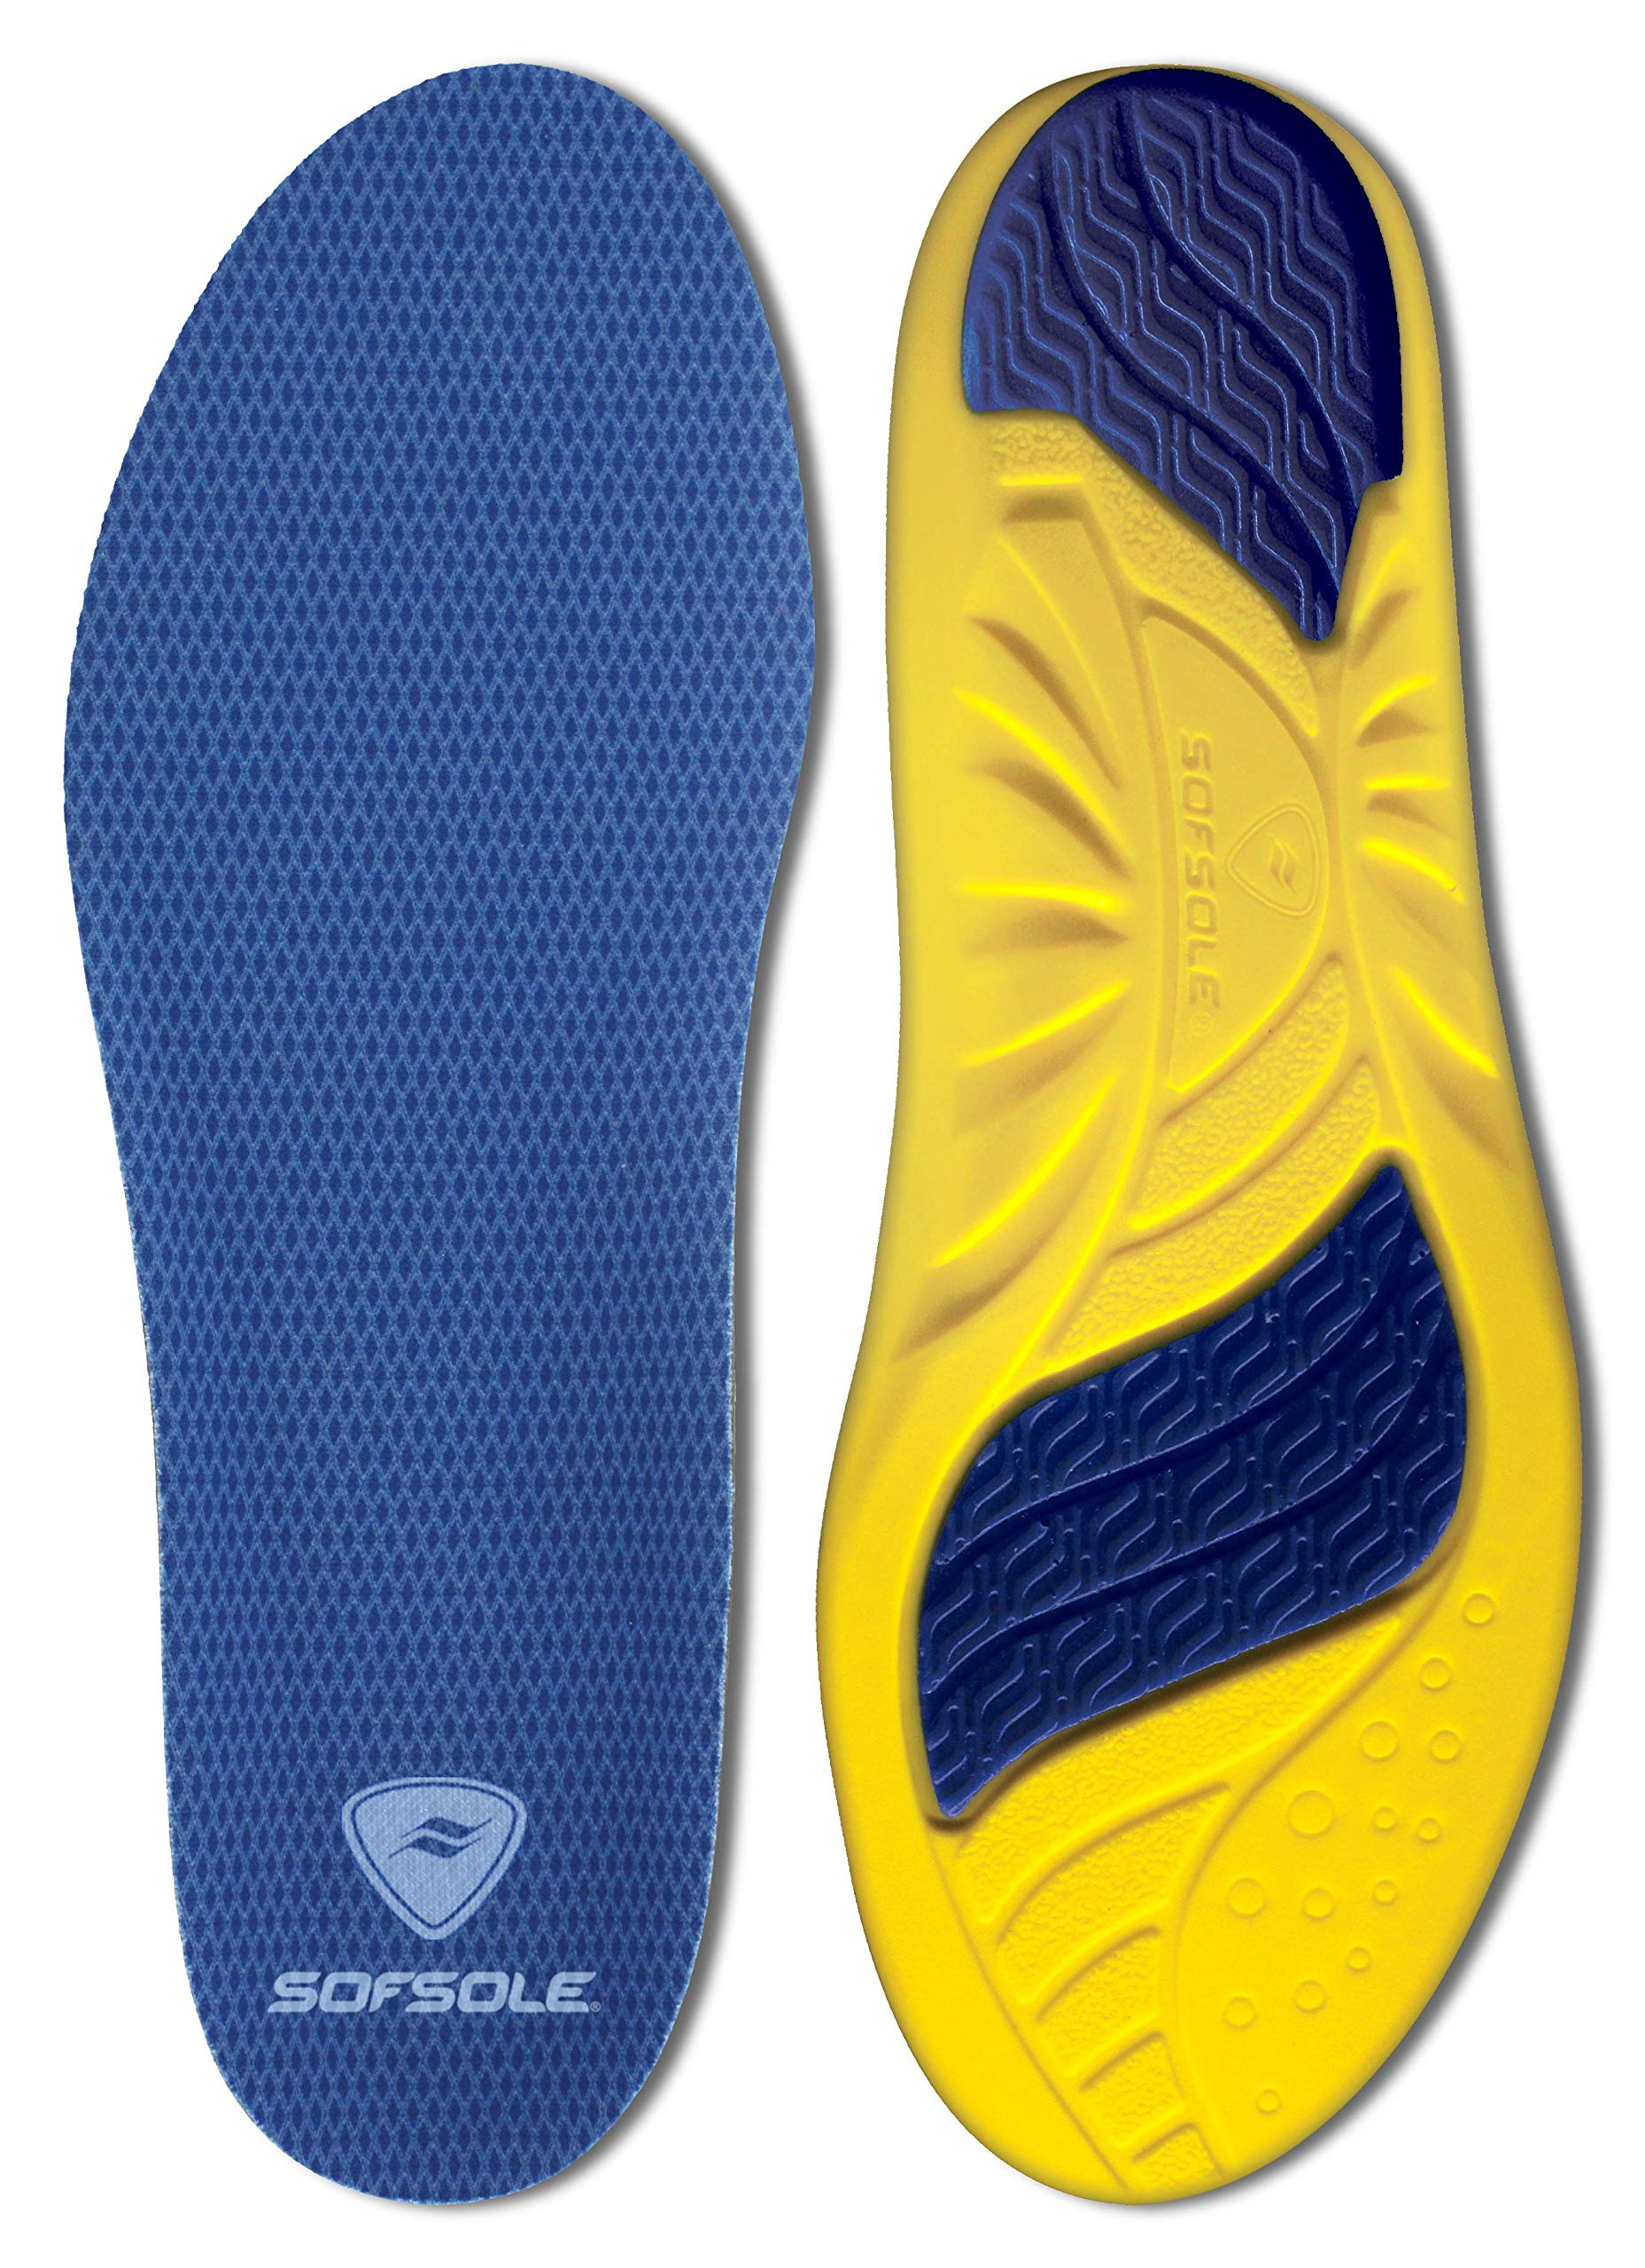 Sof Sole Insoles Men's Athlete Performance Full-Length Gel Shoe Insert, Men's 9-10.5 Blue by Sof Sole